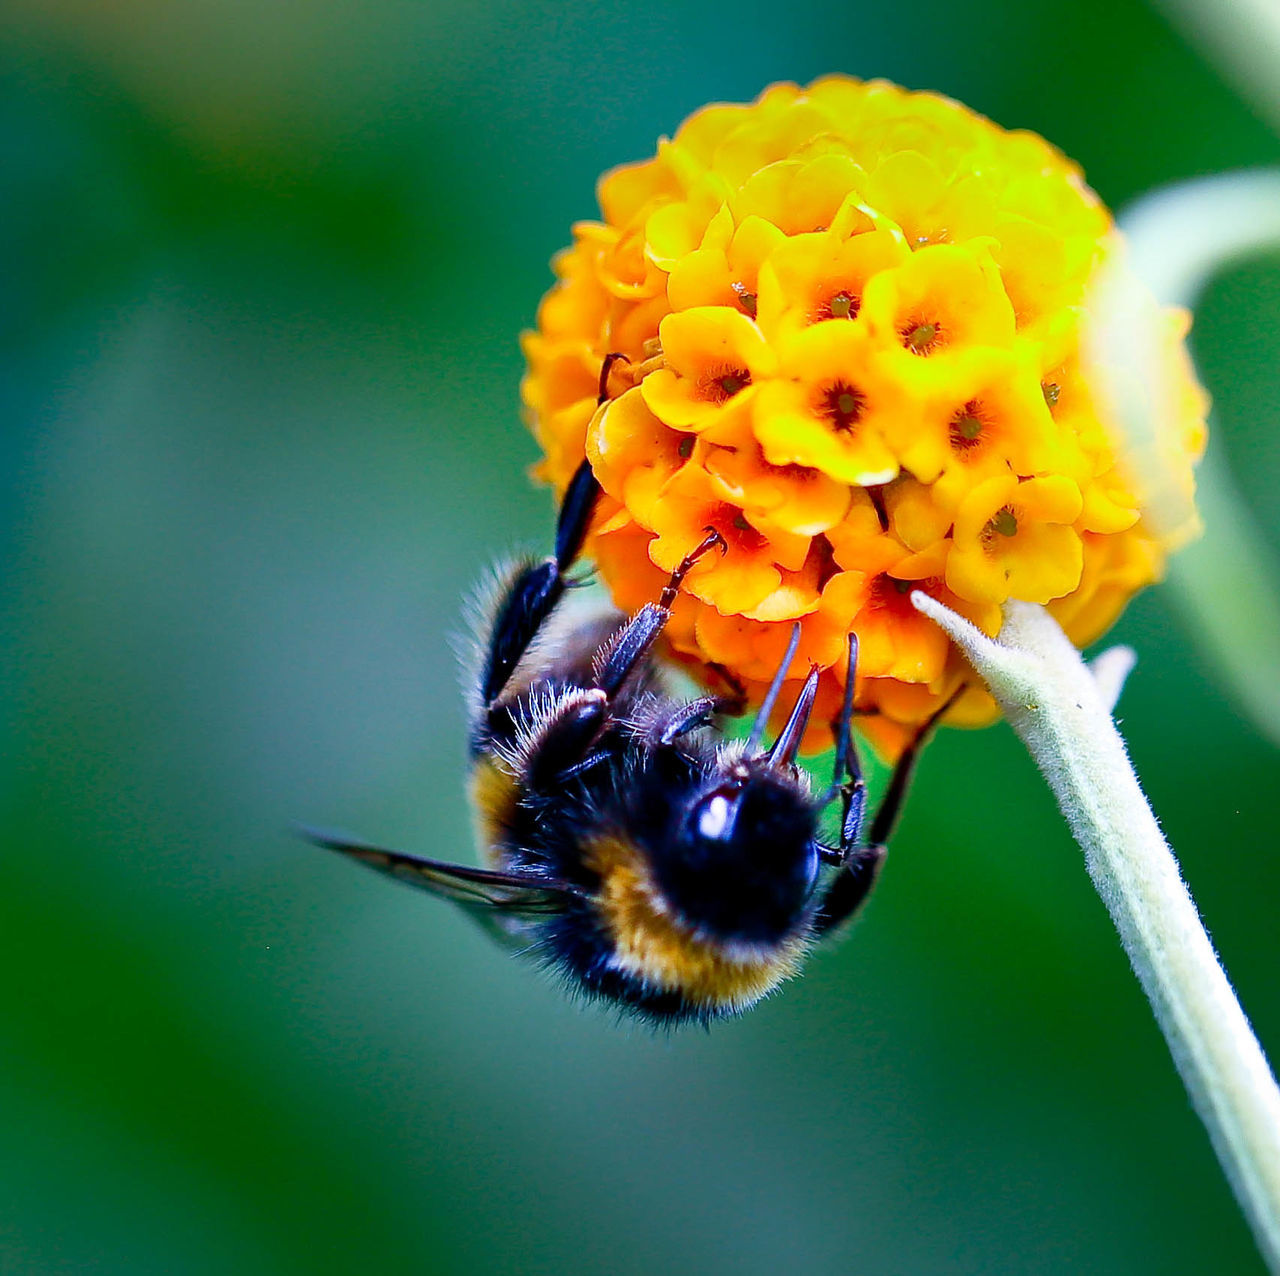 Extreme Close-Up Of Honey Bee Pollinating On Yellow Flower